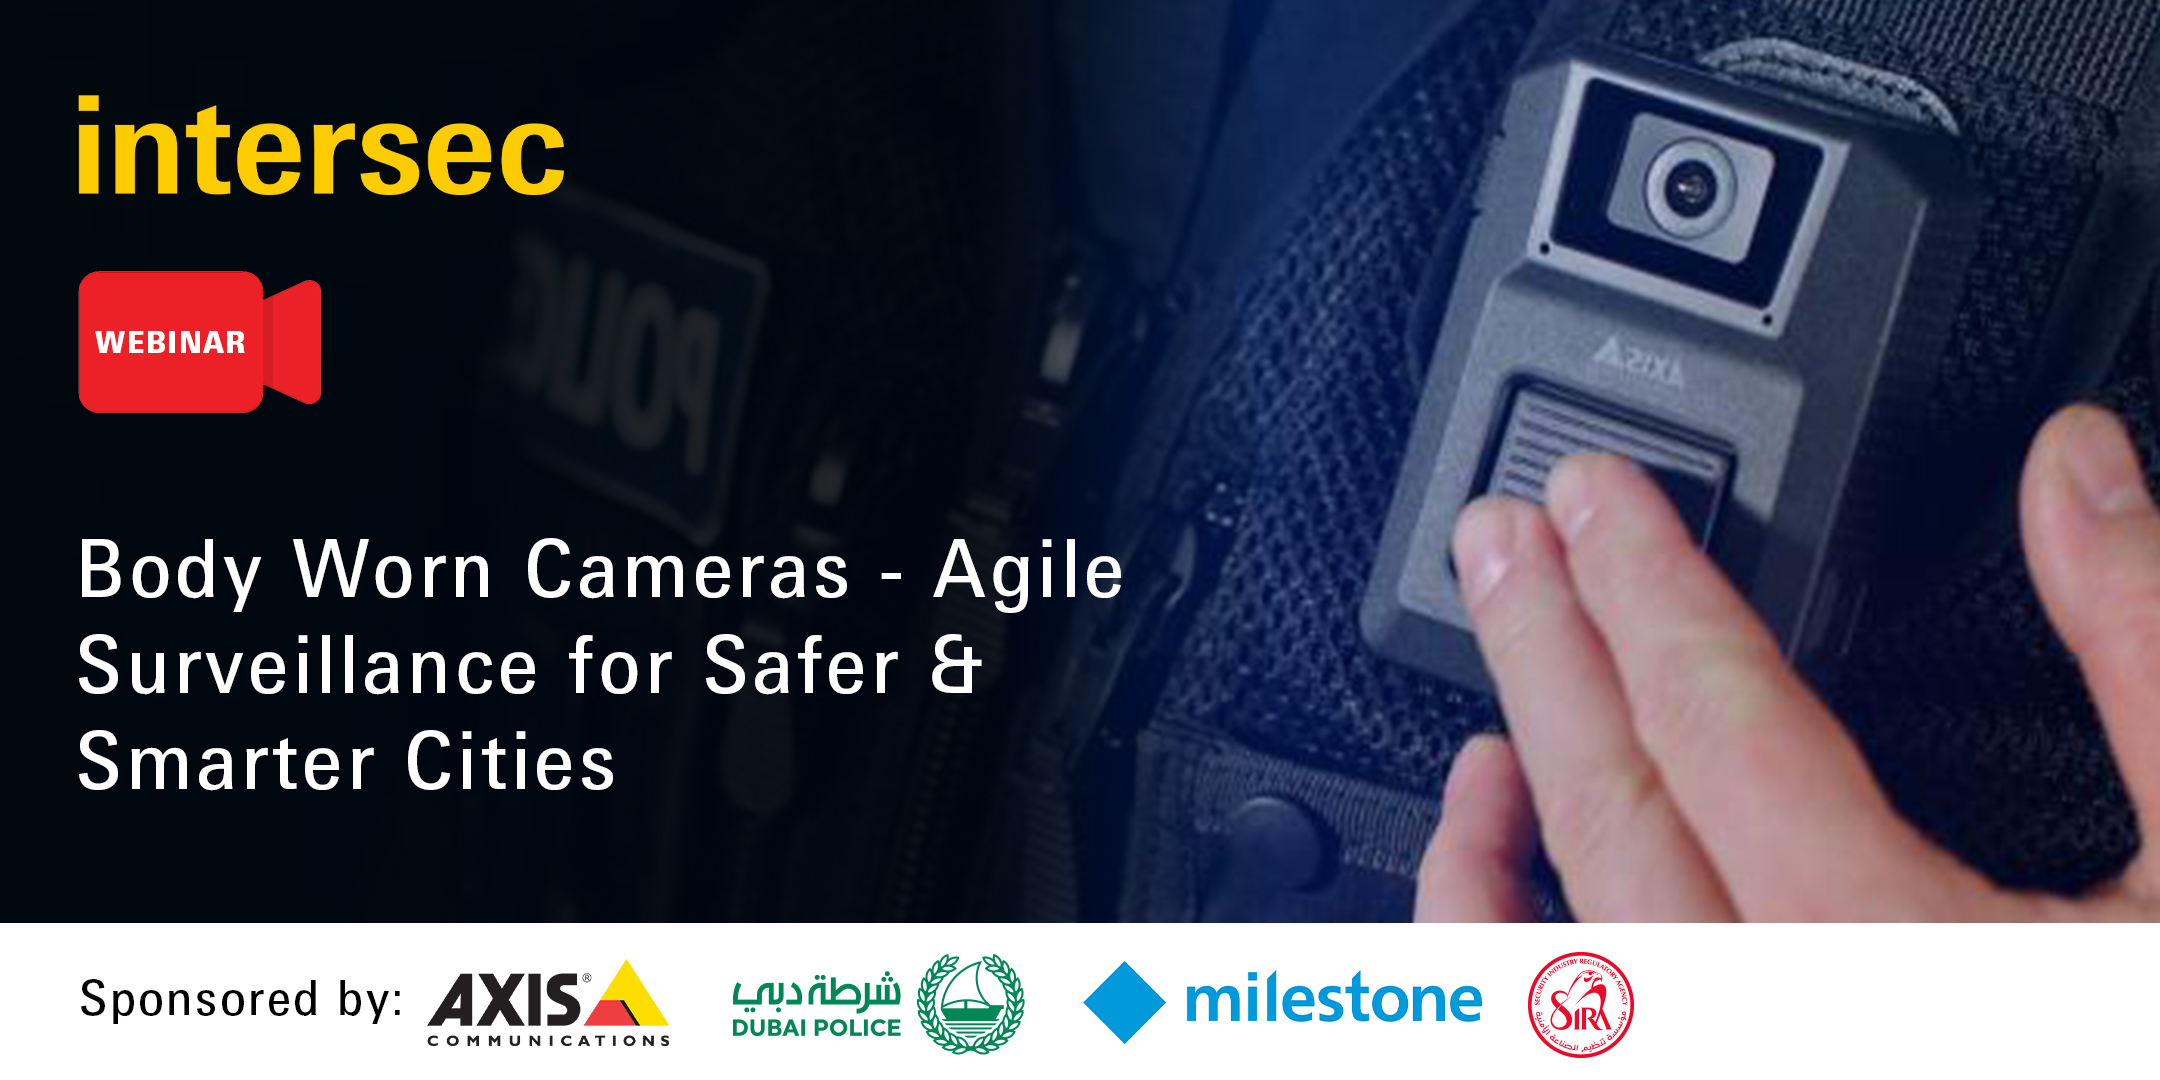 Body Worn Cameras – Agile Surveillance for Safer & Smarter Cities